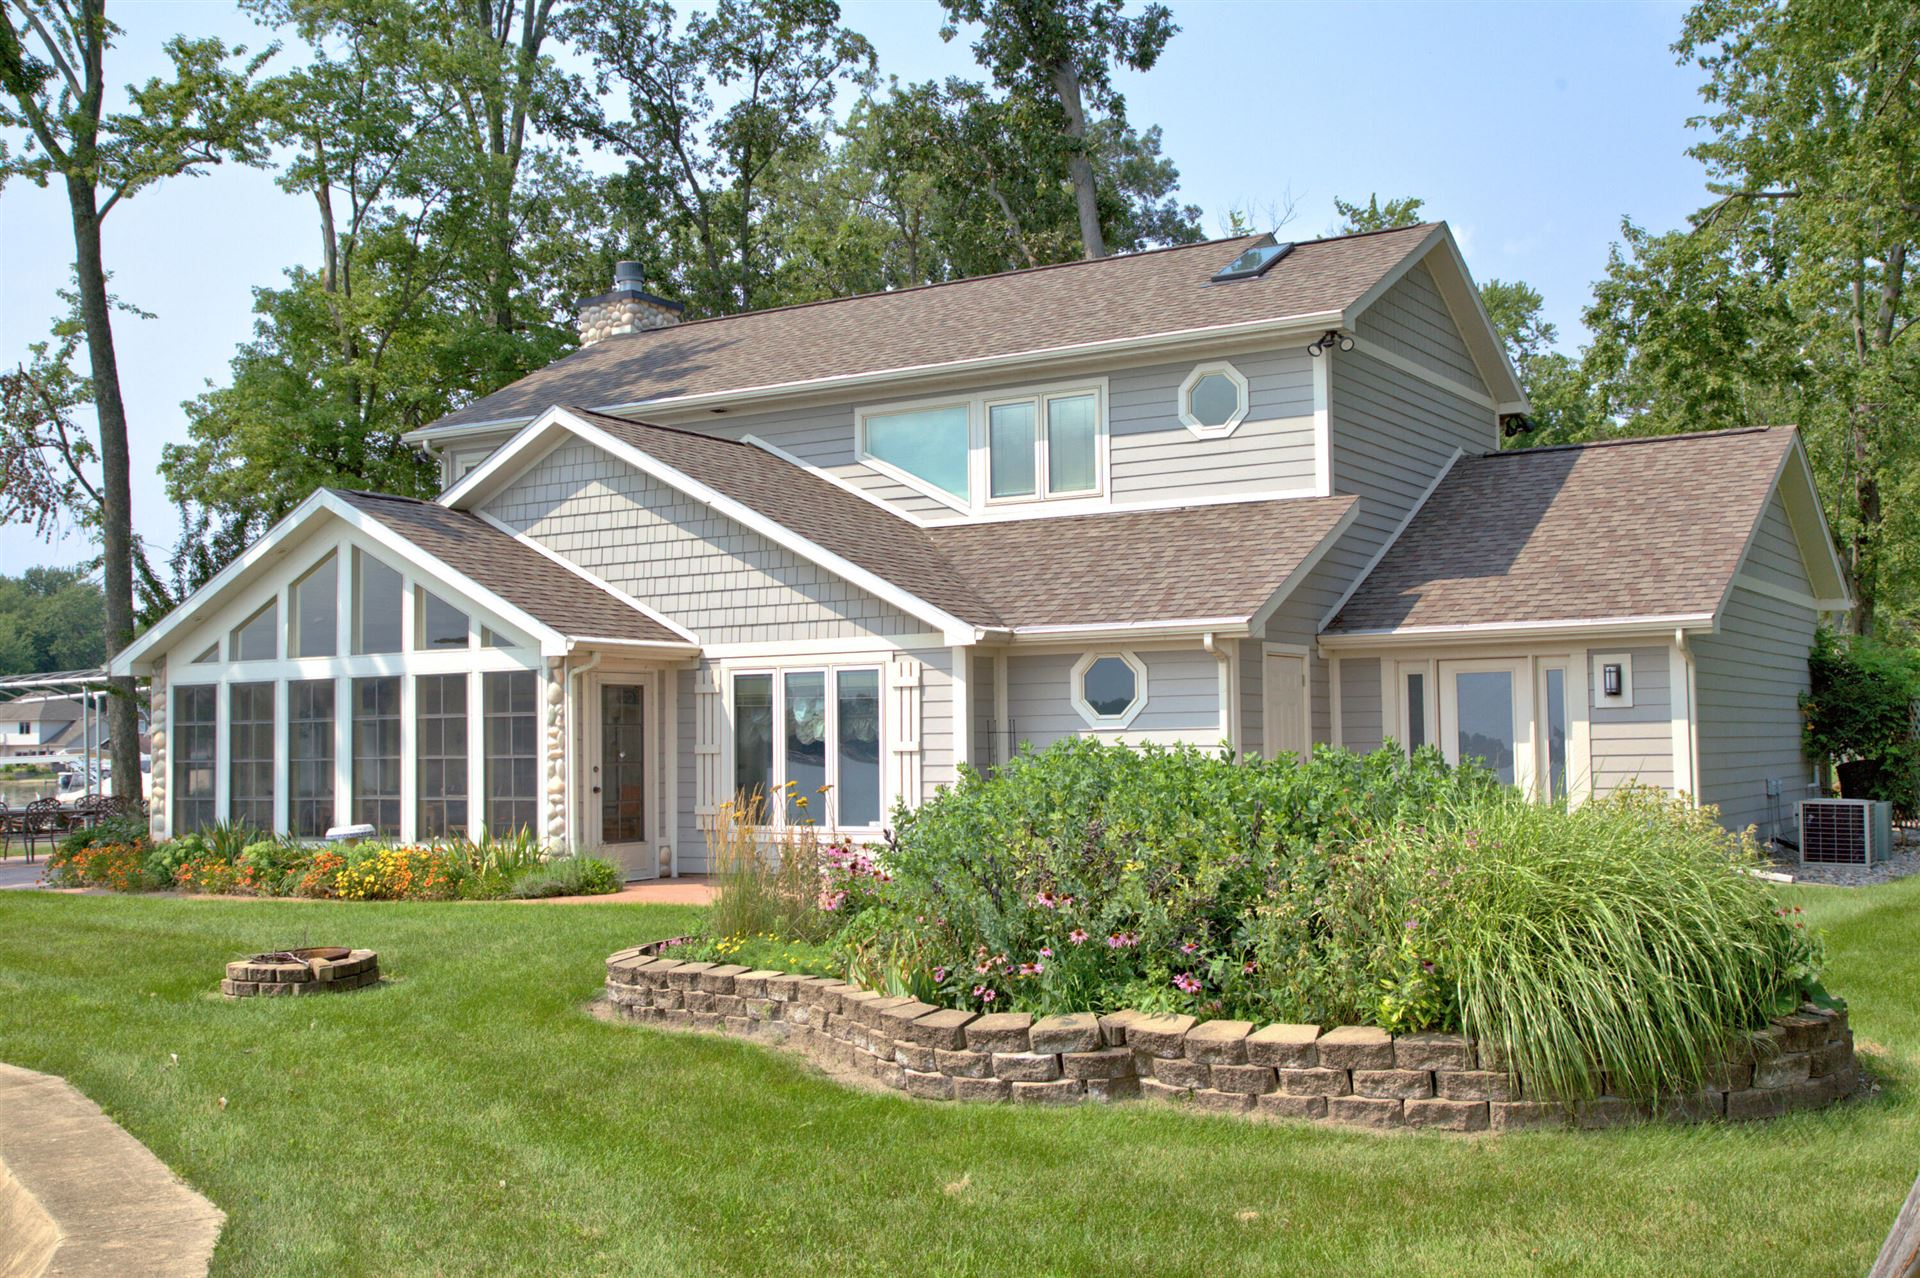 485 Wenger Drive, Coldwater, MI 49036 - MLS#: 21097513